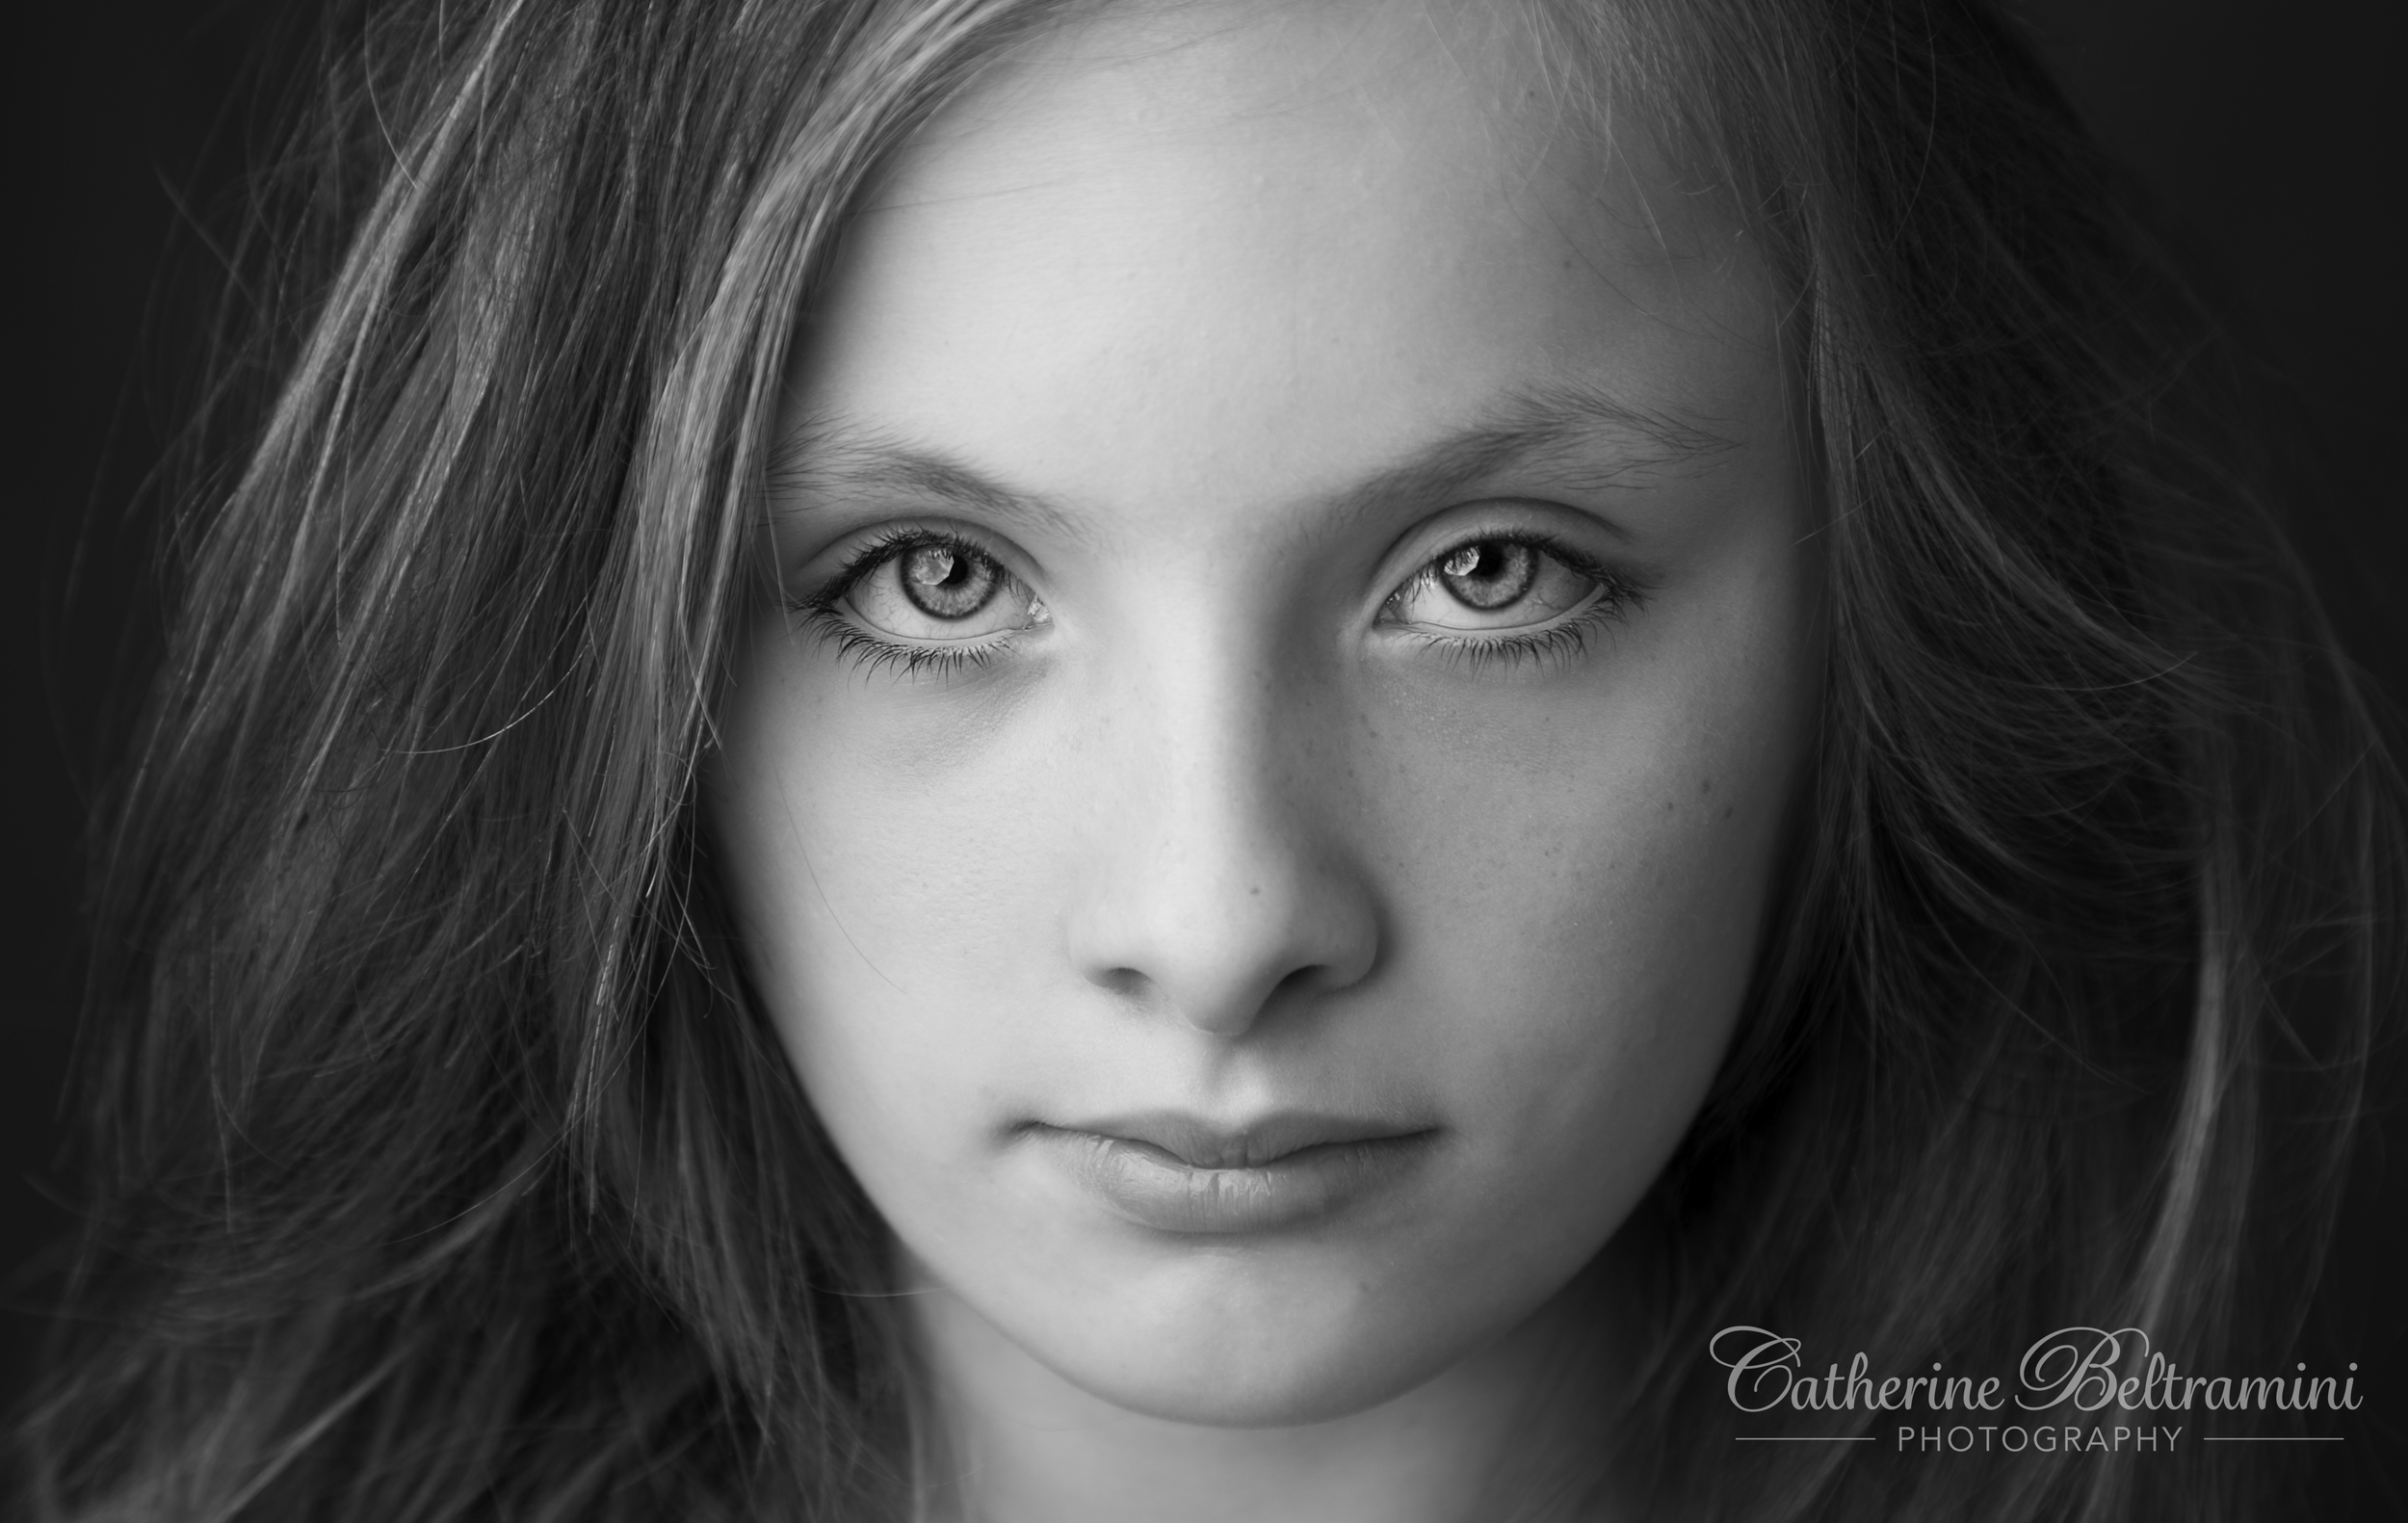 Moody black & white portrait of a beautiful young girl.